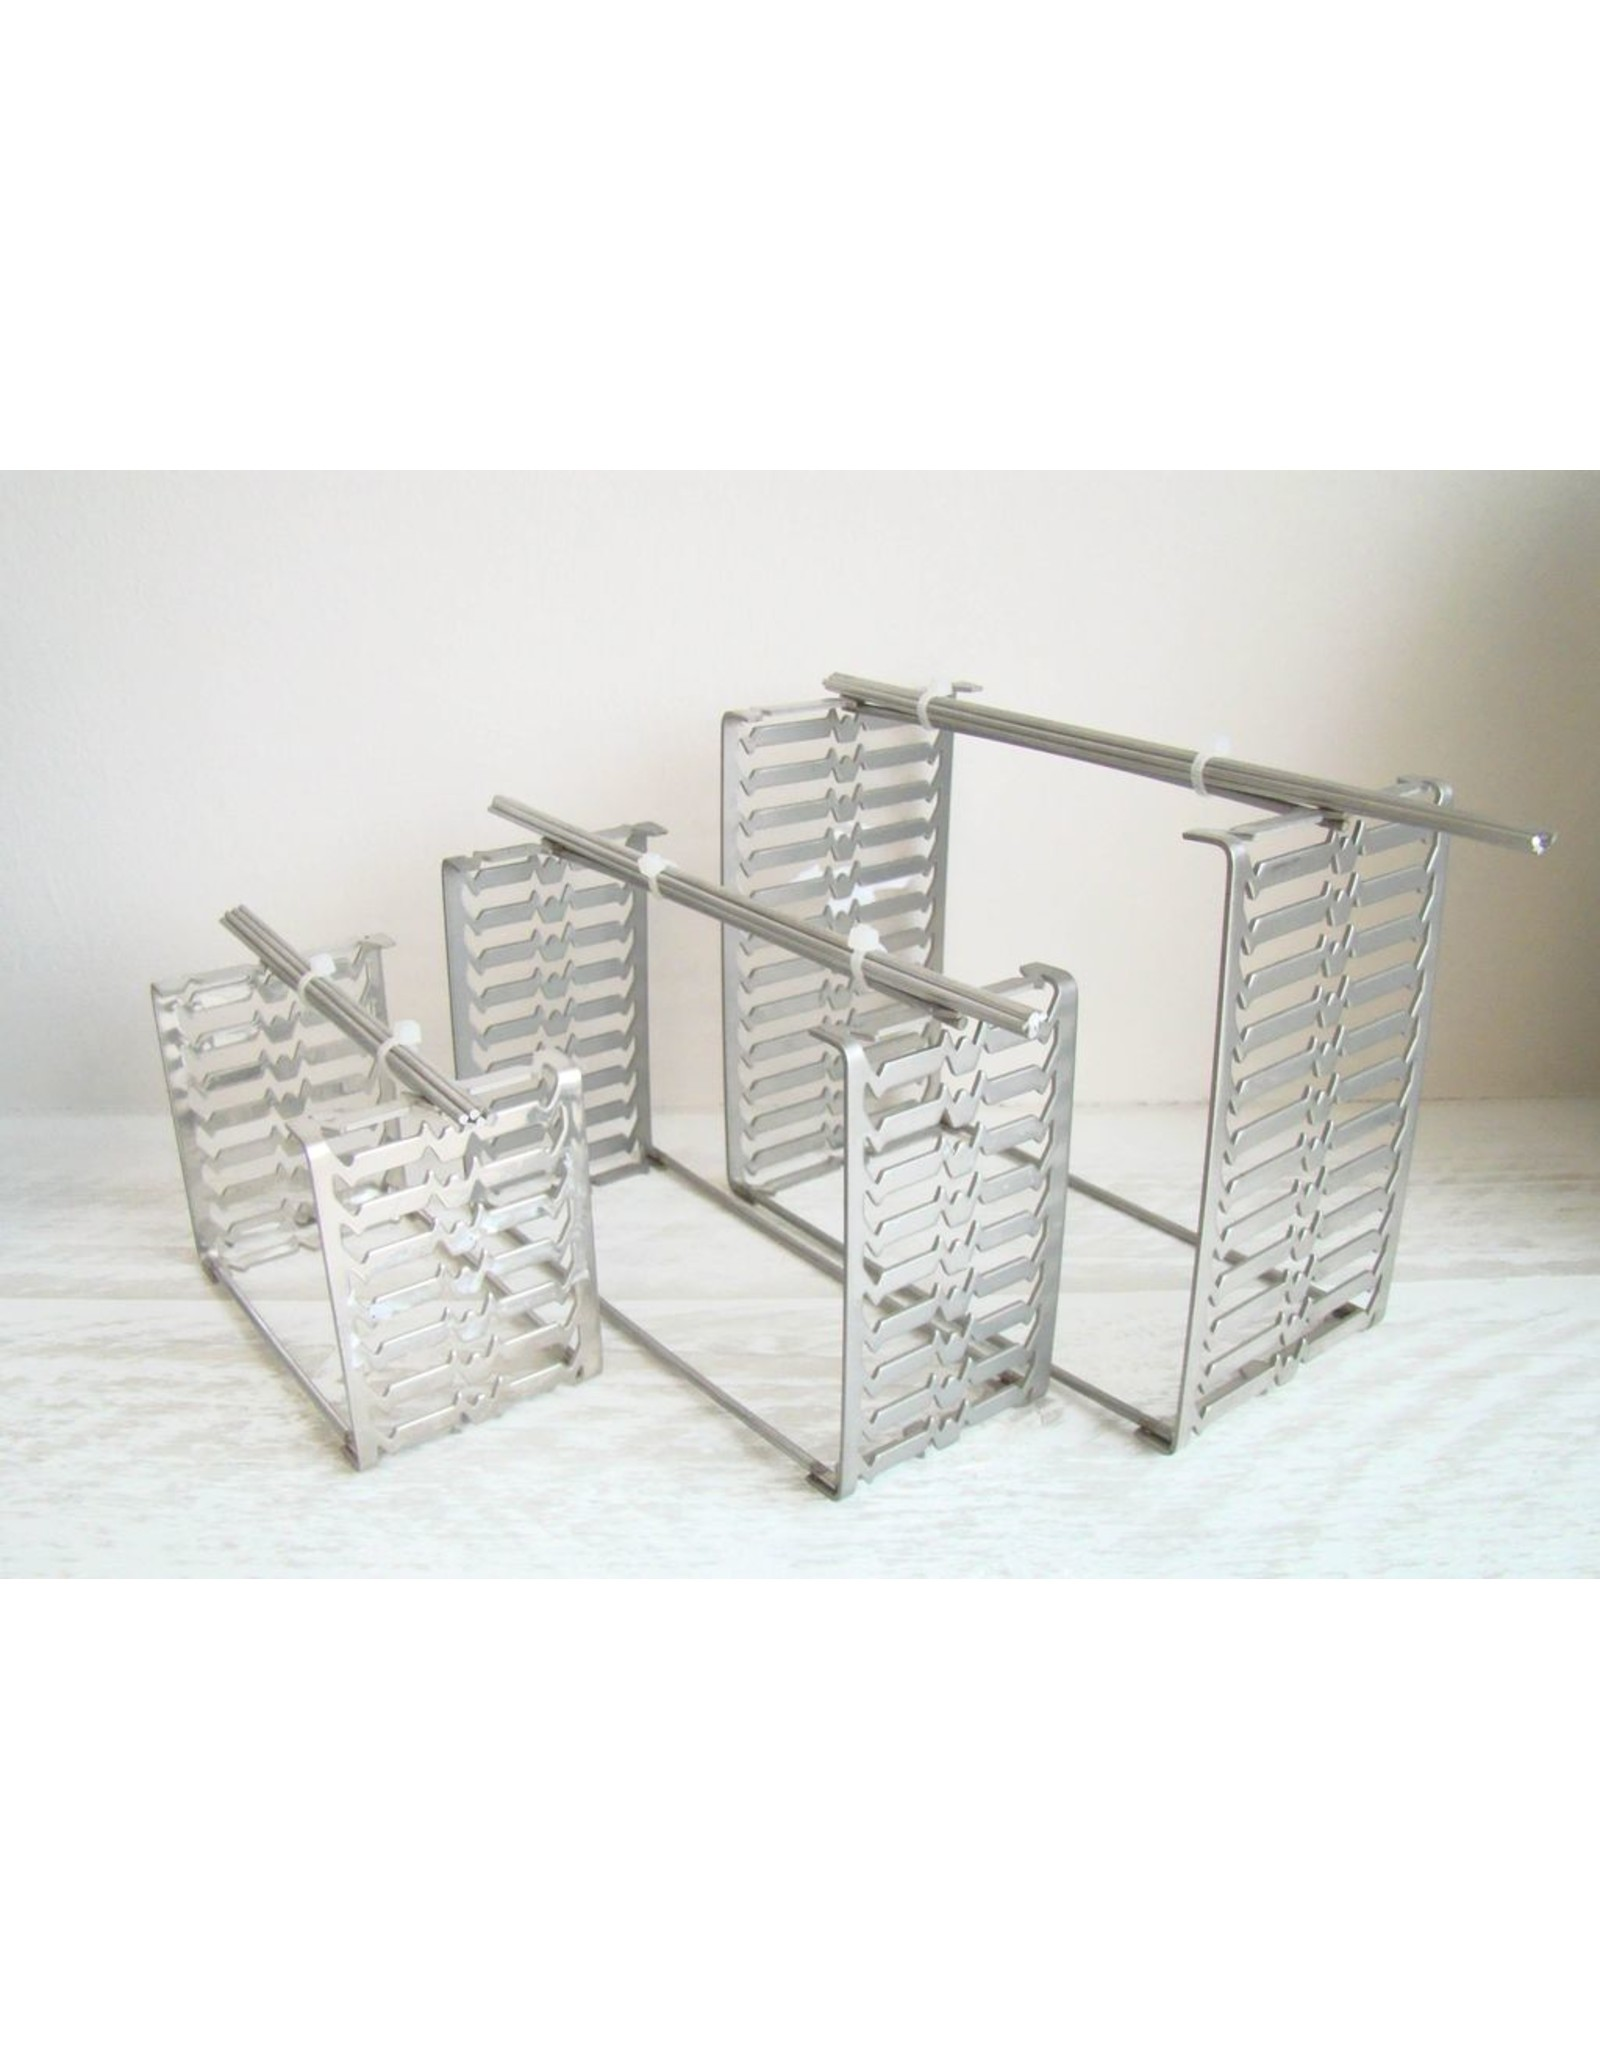 Pyrotec 10cm high x 8cm wide x 6cm wide approx.